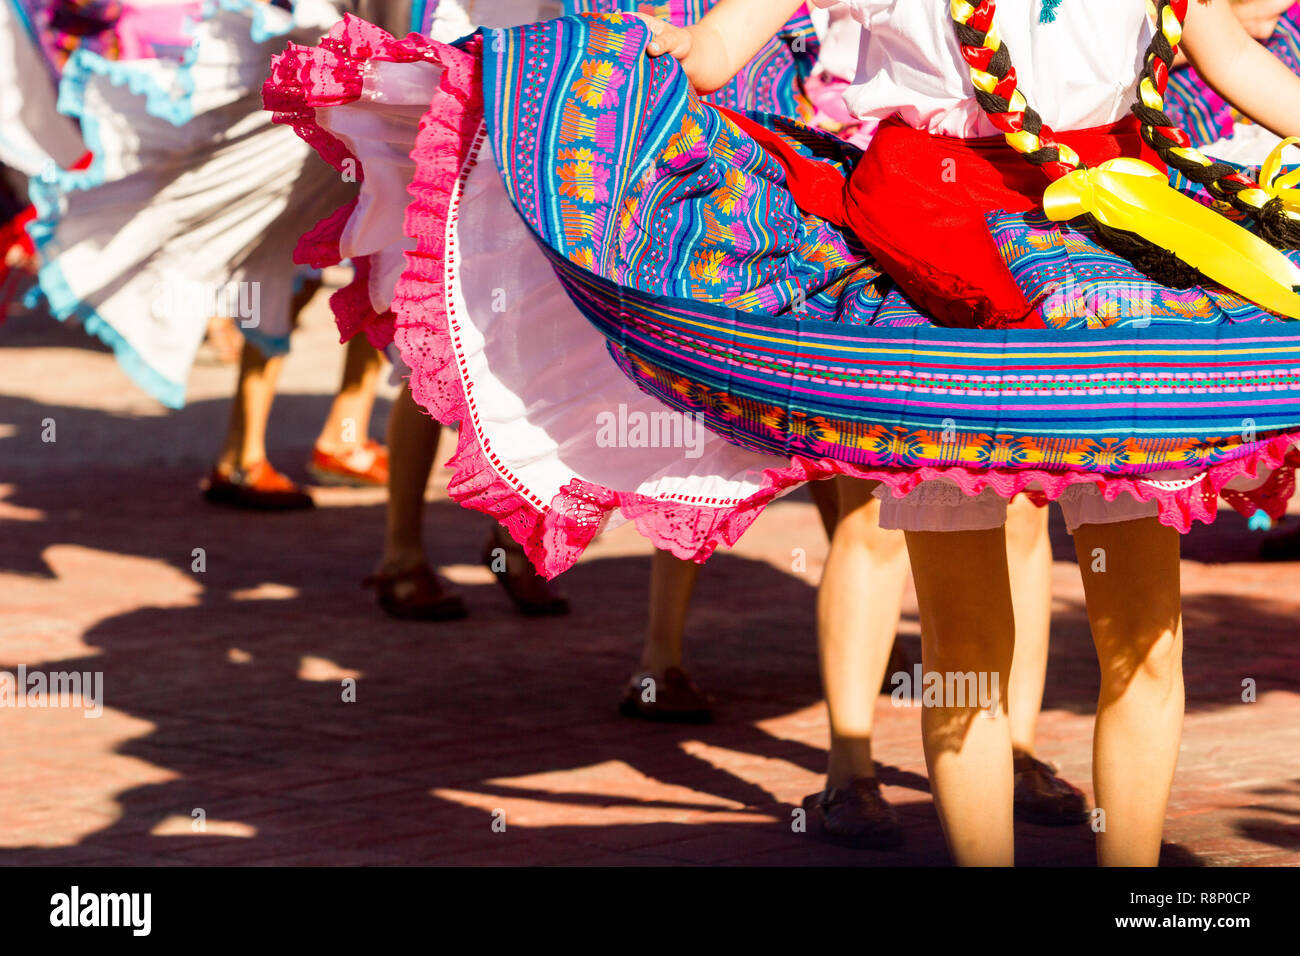 dance crew of female dancers wearing colorful traditional dresses dance waving her long skirts - Stock Image